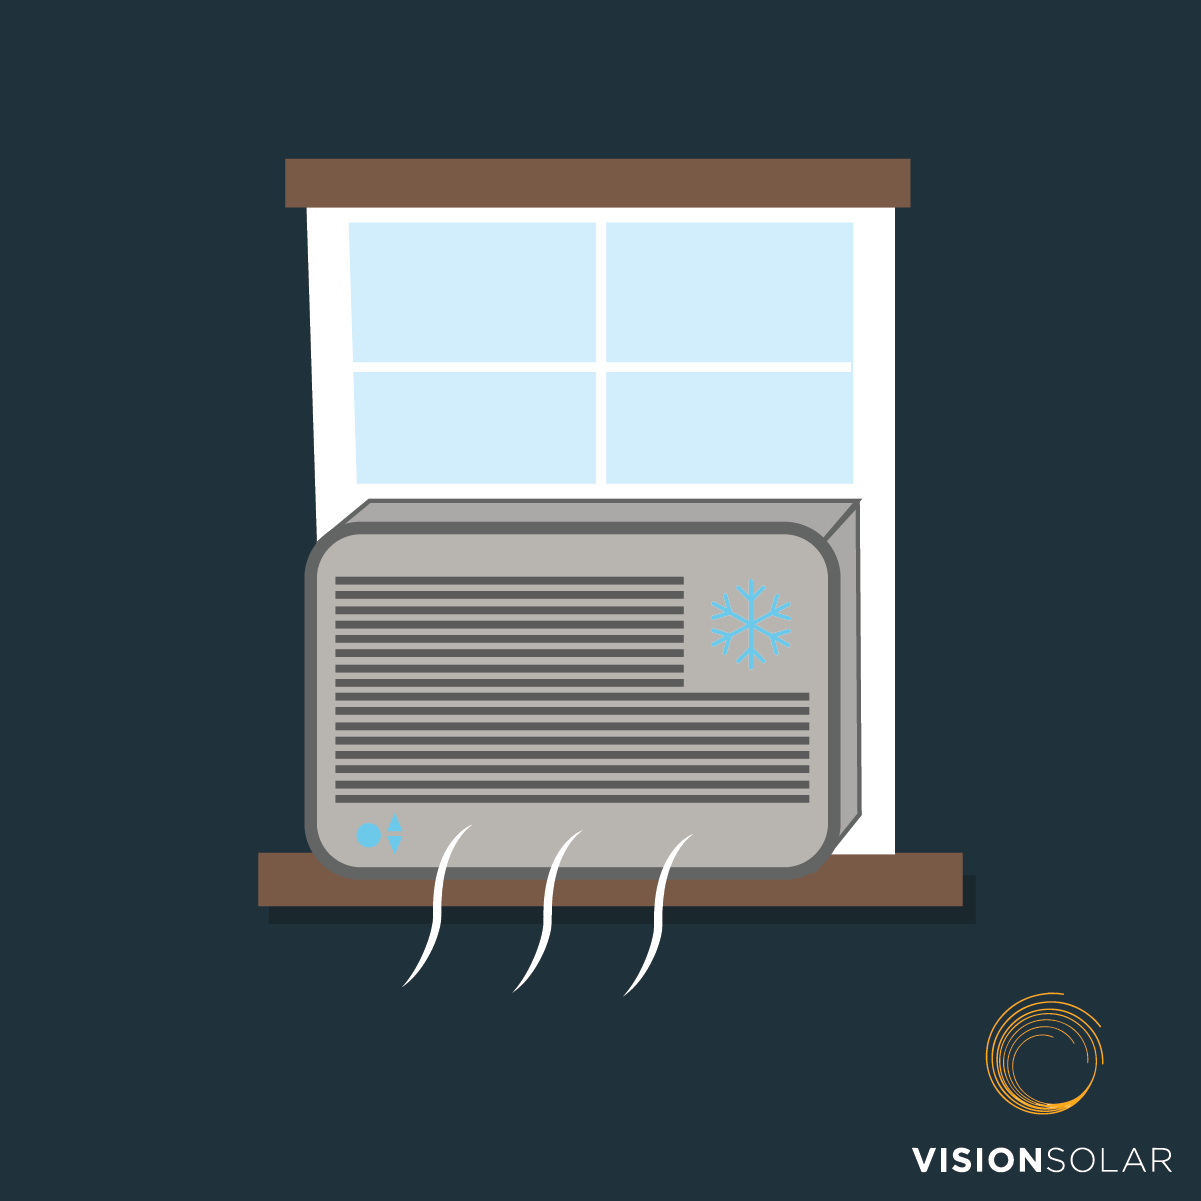 Vision Solar : Beat the Heat With Solar